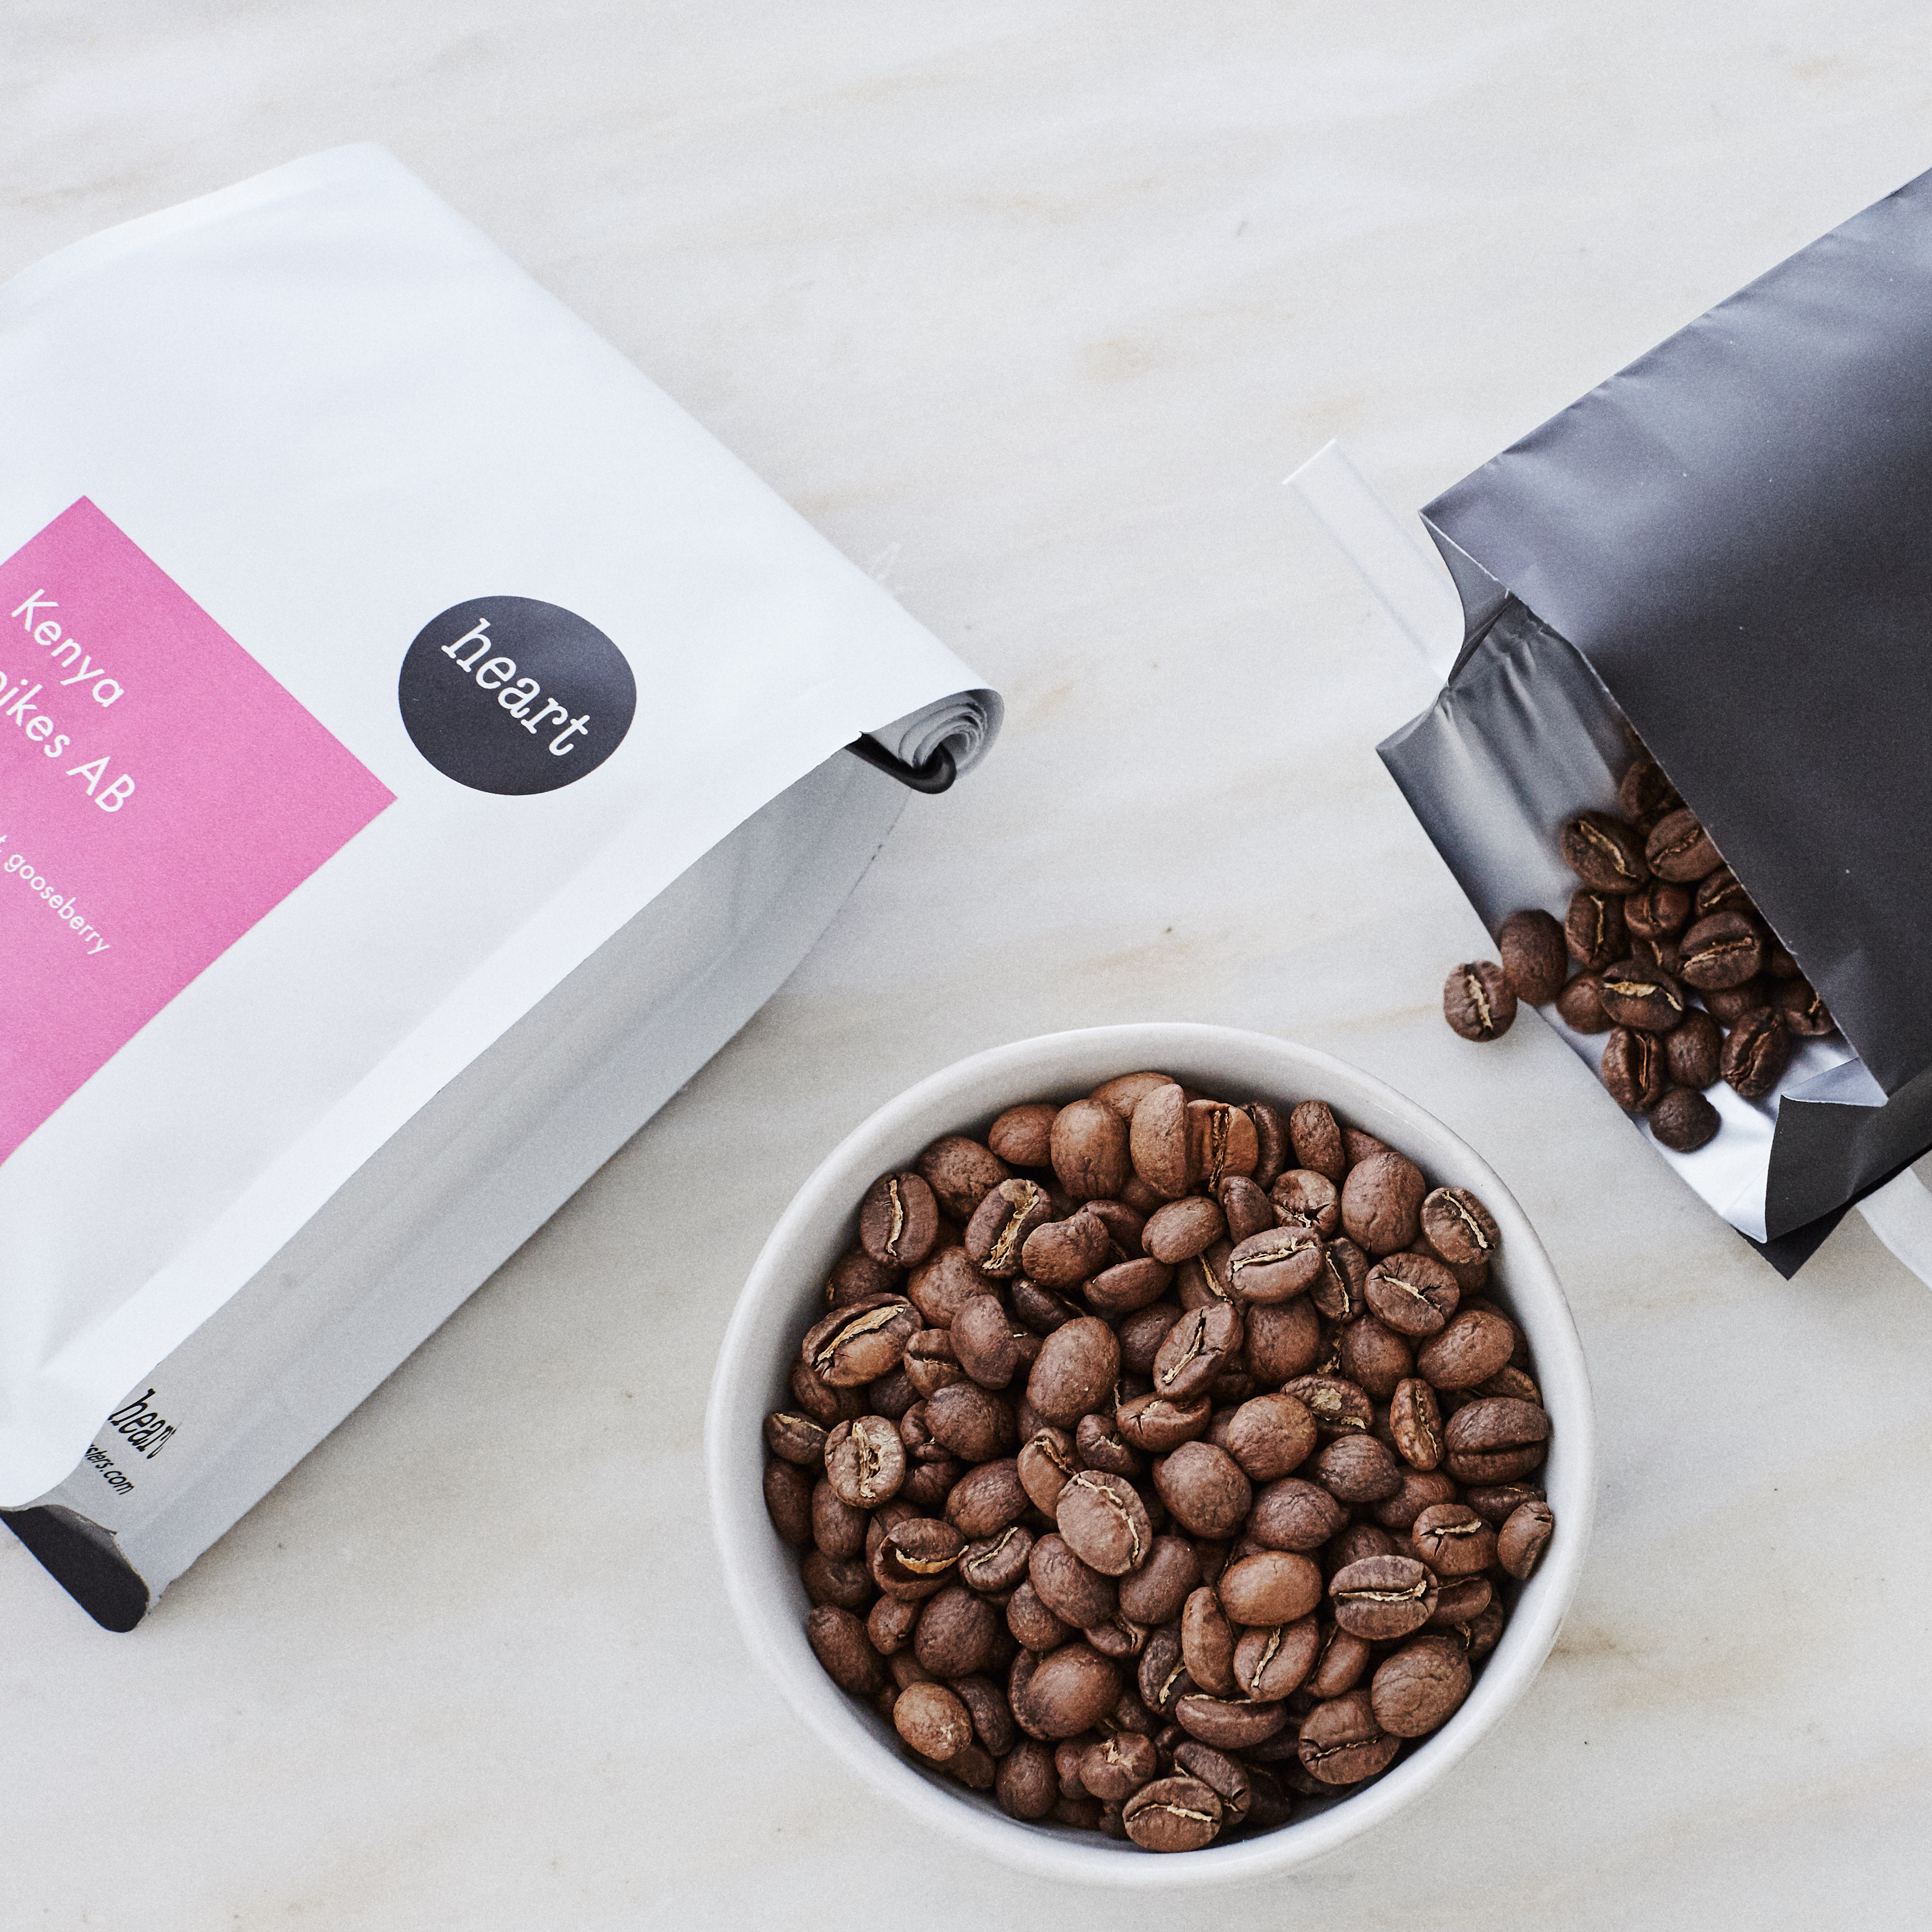 Coffee beans with retail bags of coffee